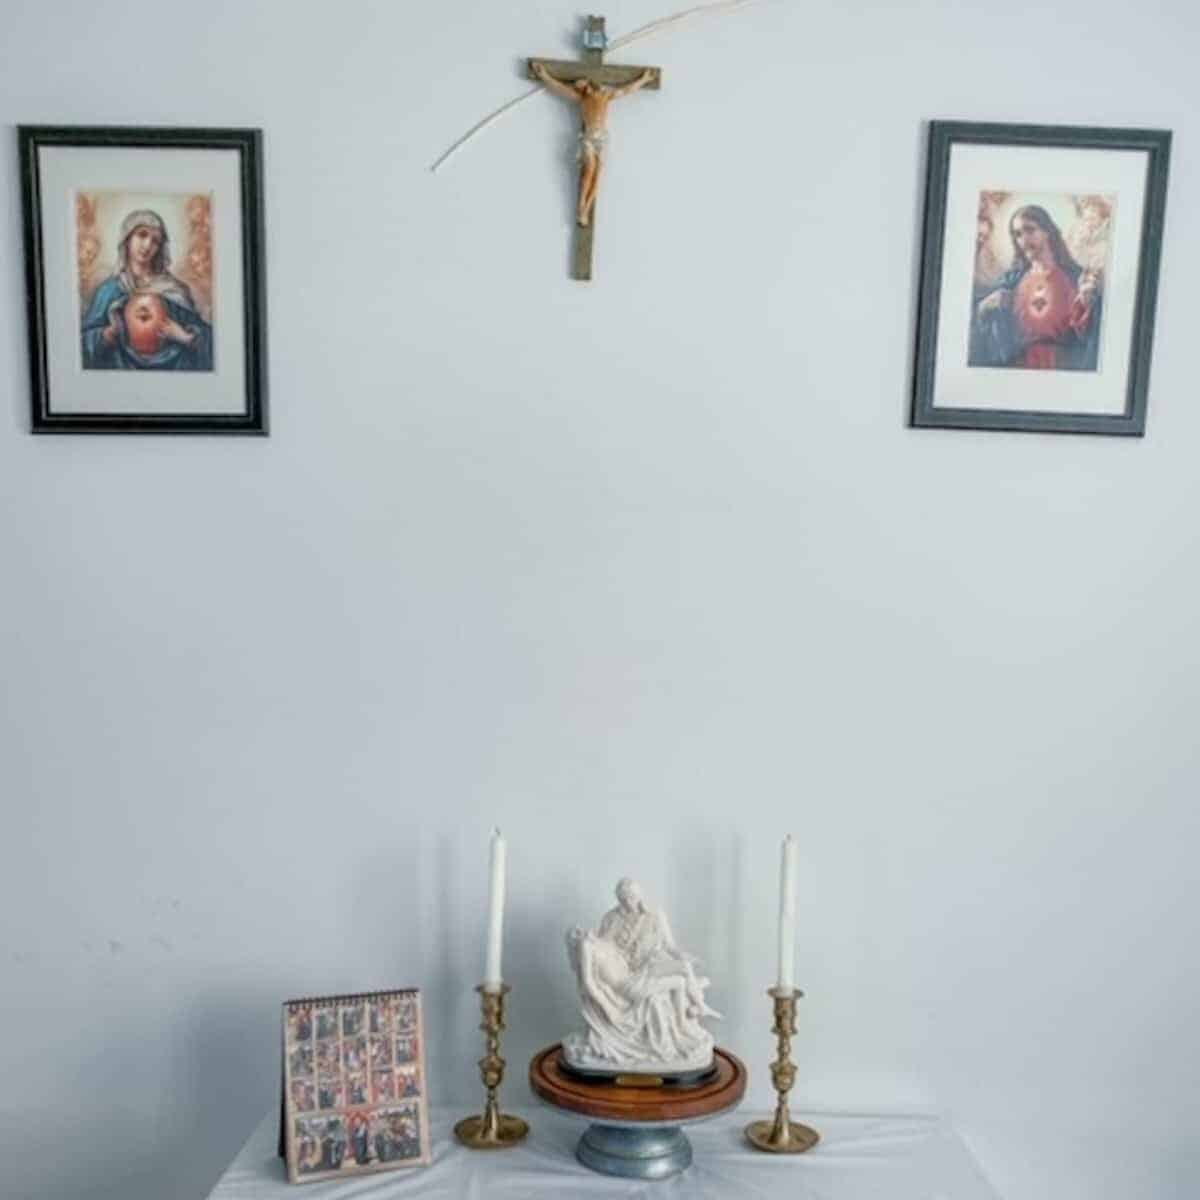 overview of the catholic home altar set up with statues, candles, and images